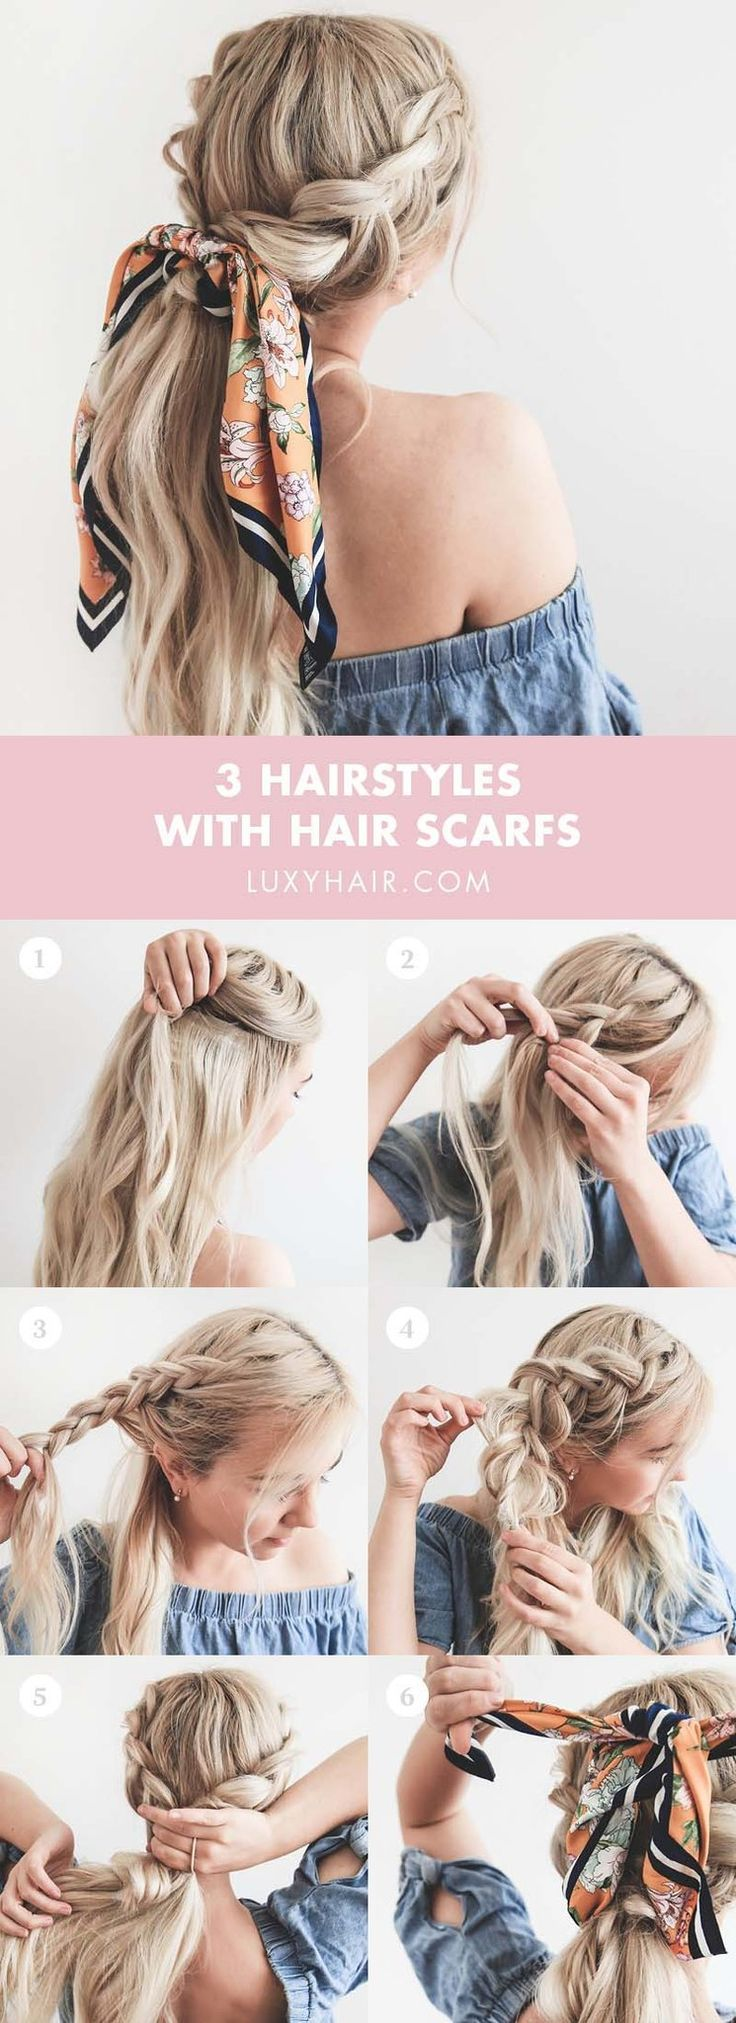 Summer hairstyles with headscarves – #Hairstyles #headscarves #summer